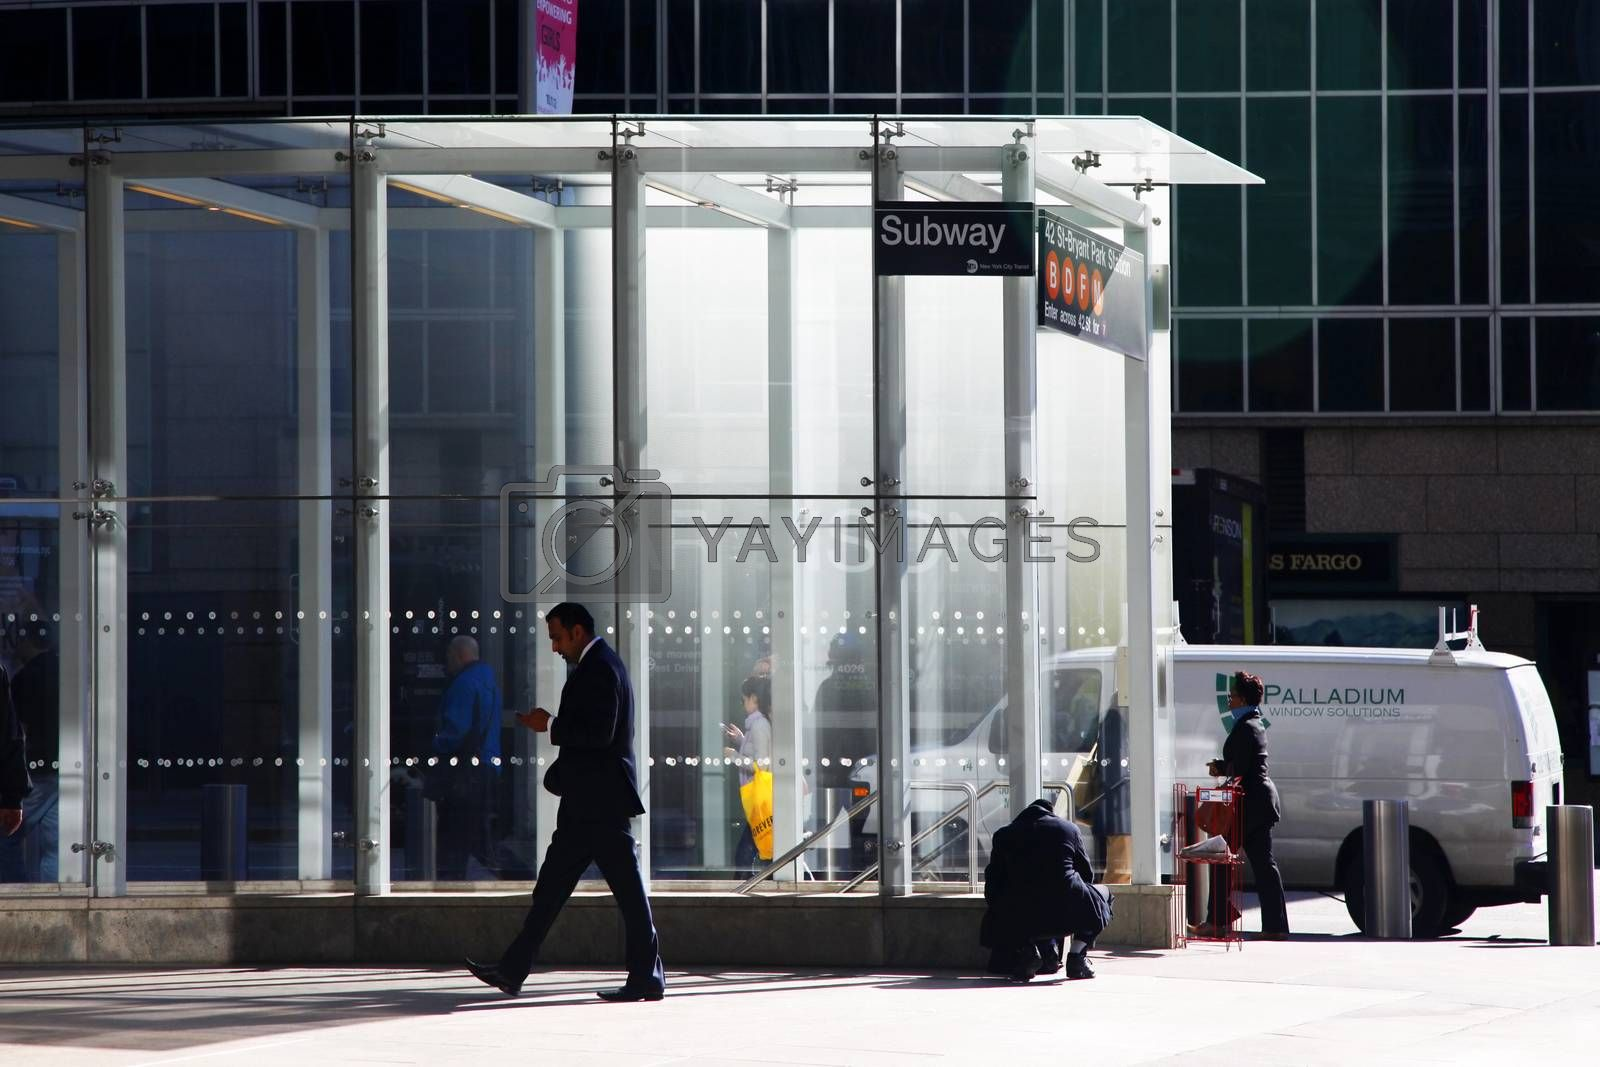 NEW YORK, USA - October 11, 2012: Subway entrance in Times Square in New York City. Manhattan, New York City.